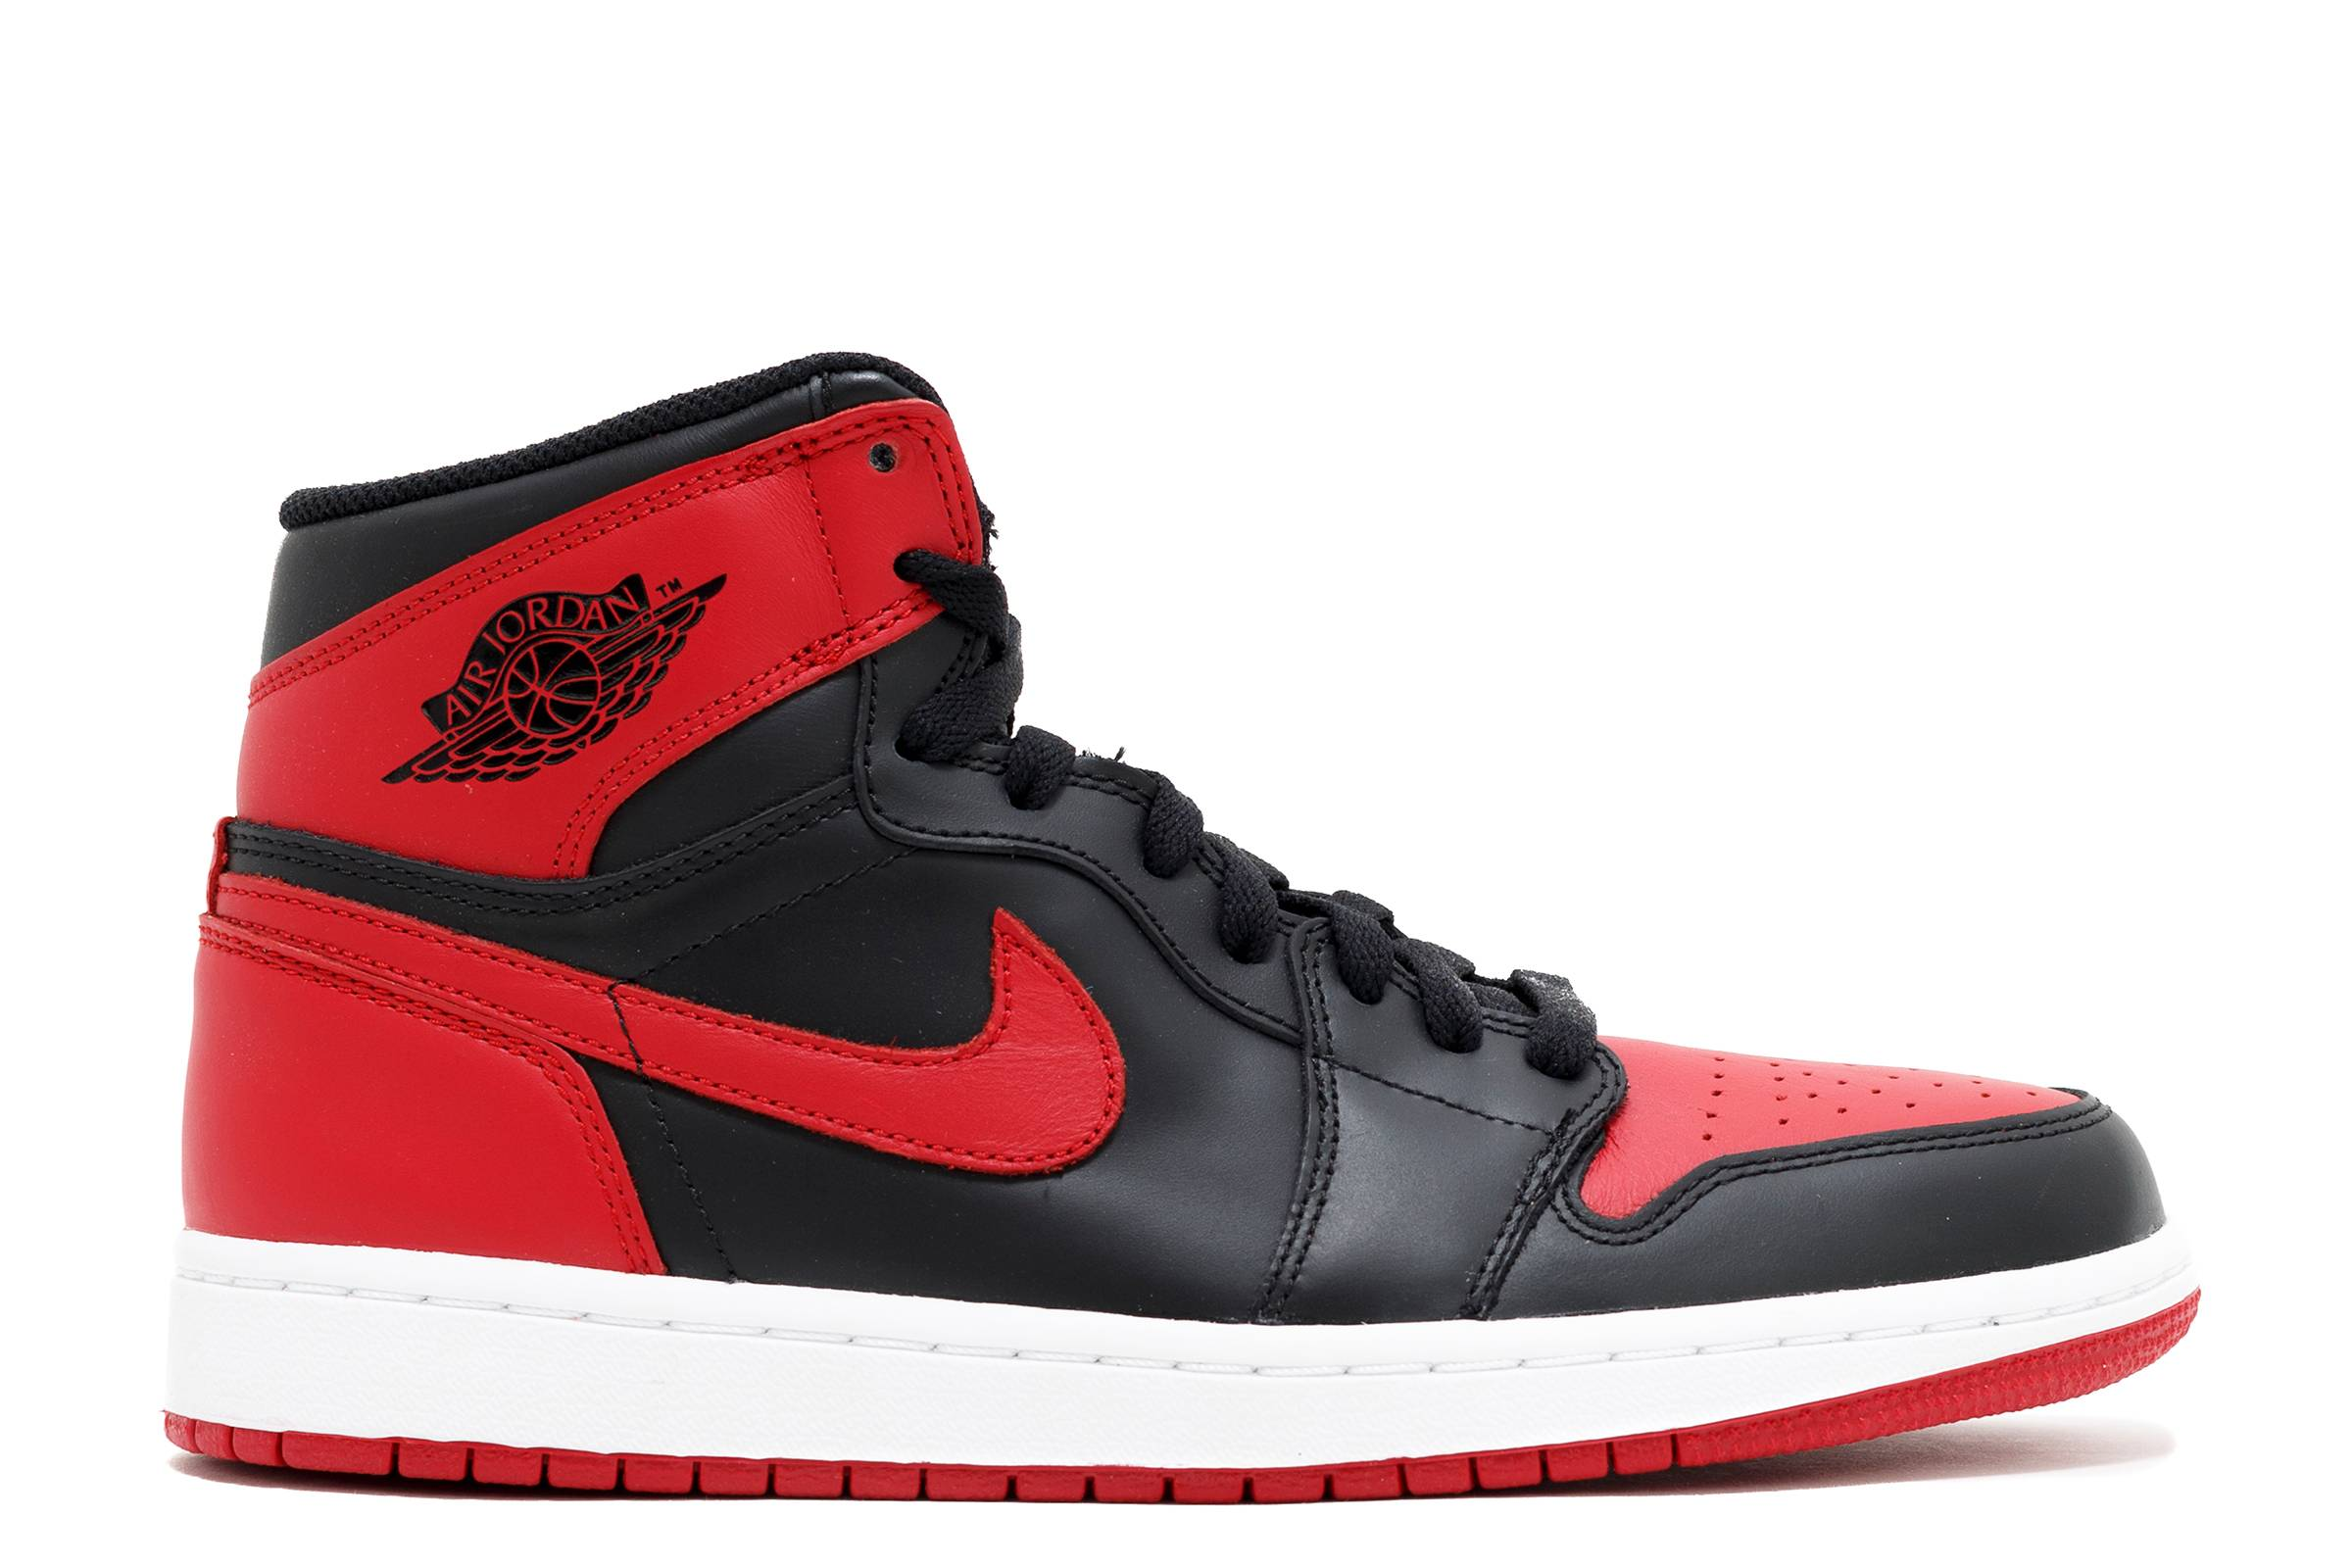 on sale 41149 ba9a9 The One That Started It All  A History of the Jordan 1